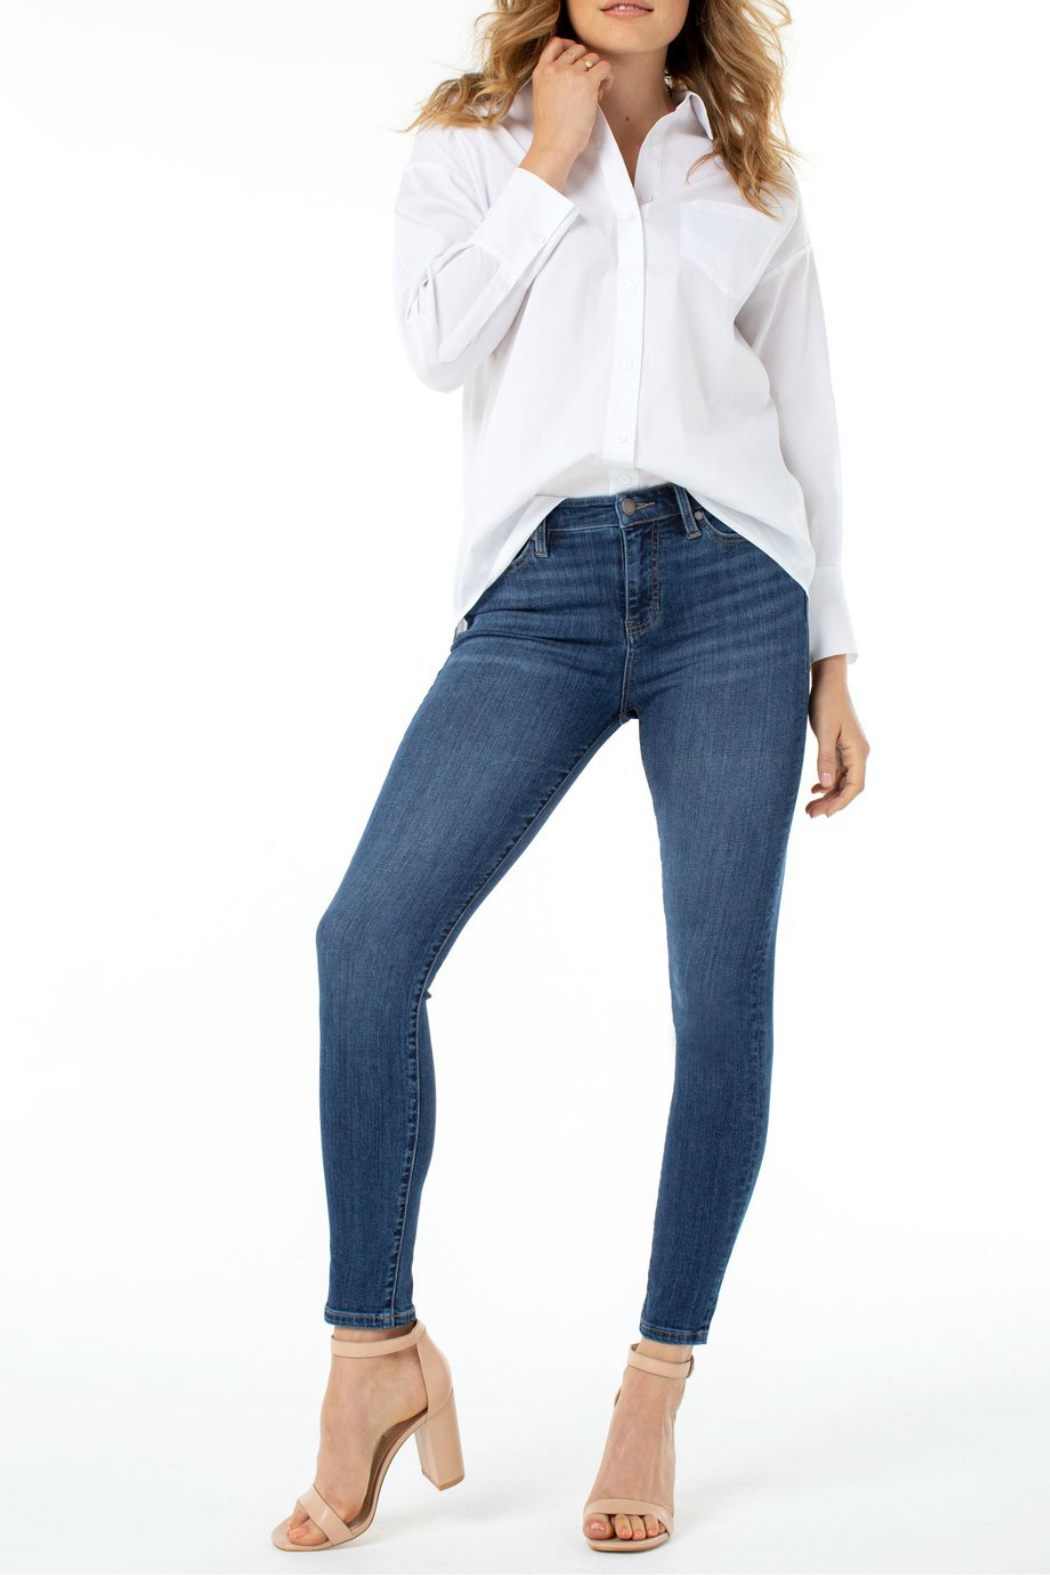 Liverpool  ABBY ANKLE SKINNY - Main Image